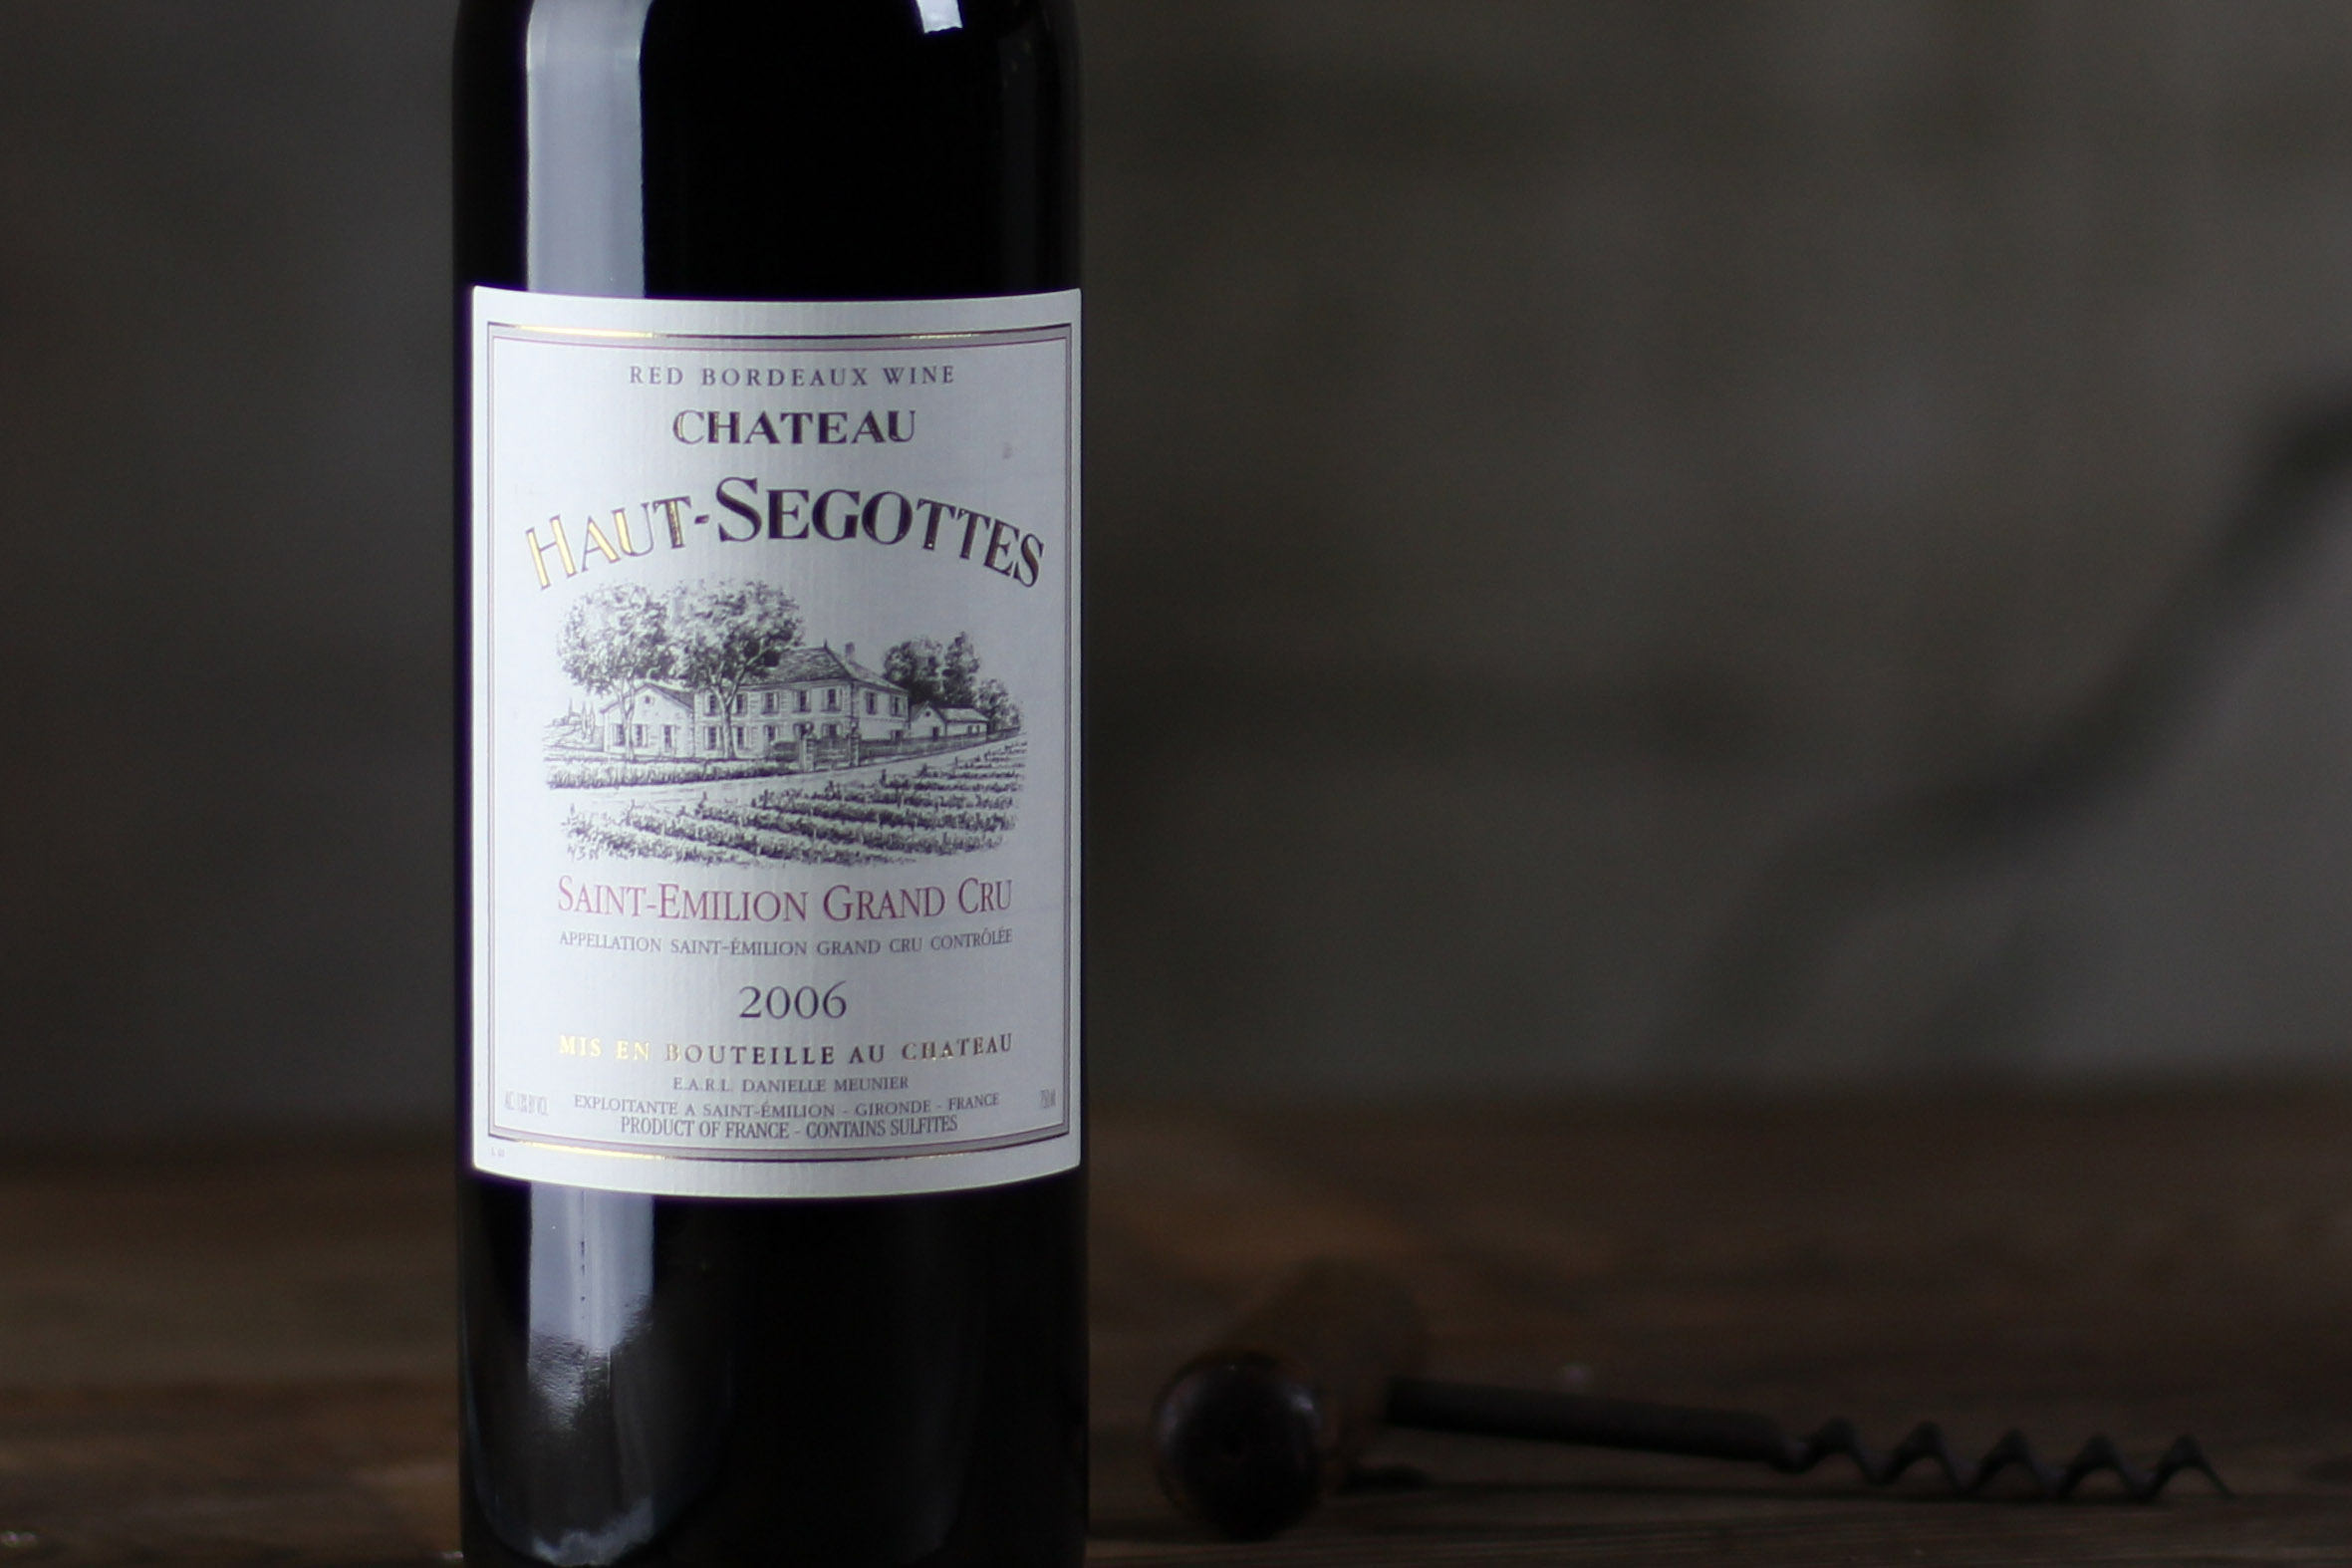 SommSelect: Château Haut-Segottes, Saint Émilion Grand Cru Bordeaux, France 2006 - SommSelect